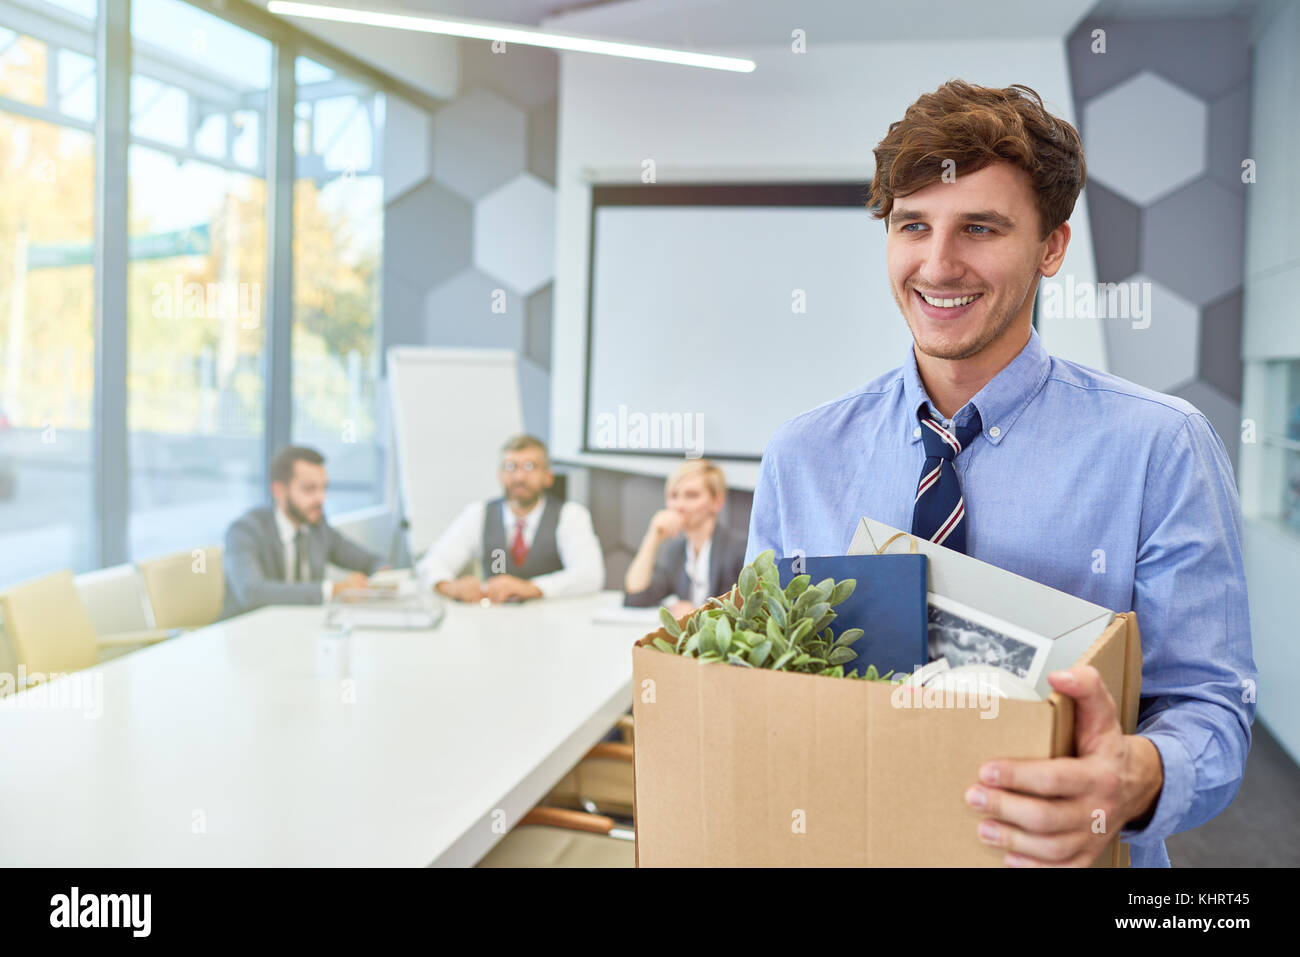 Portrait of smiling young man holding box of personal belongings being hired to work in business company, copy space - Stock Image